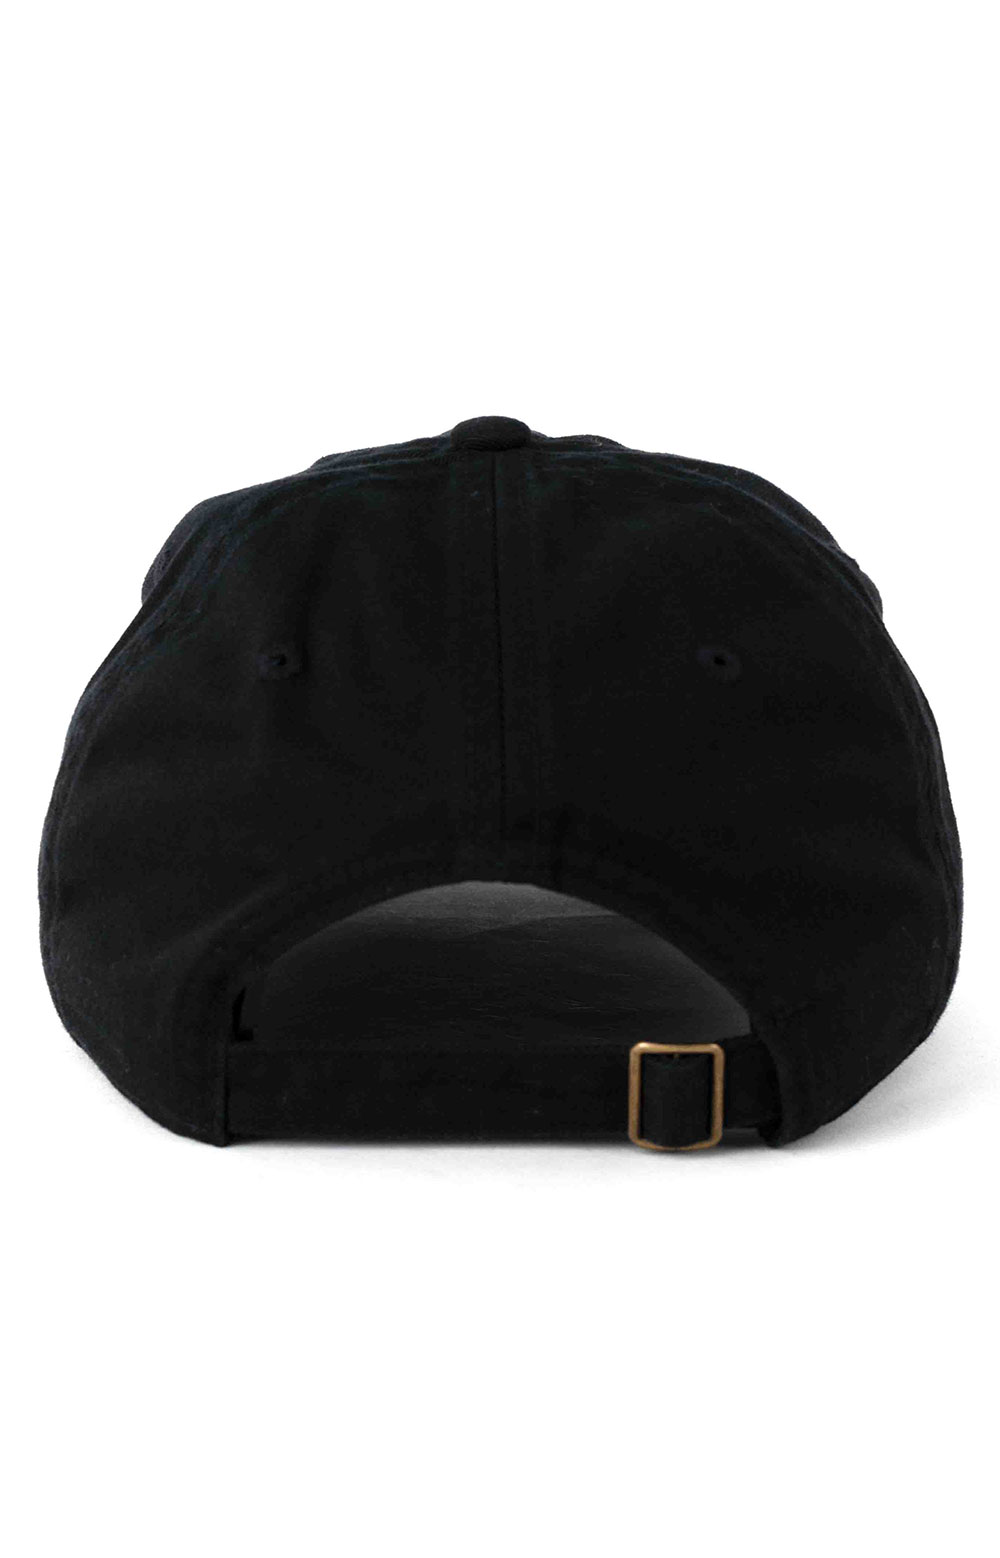 Follow Your Heart Dad Hat - Black 3